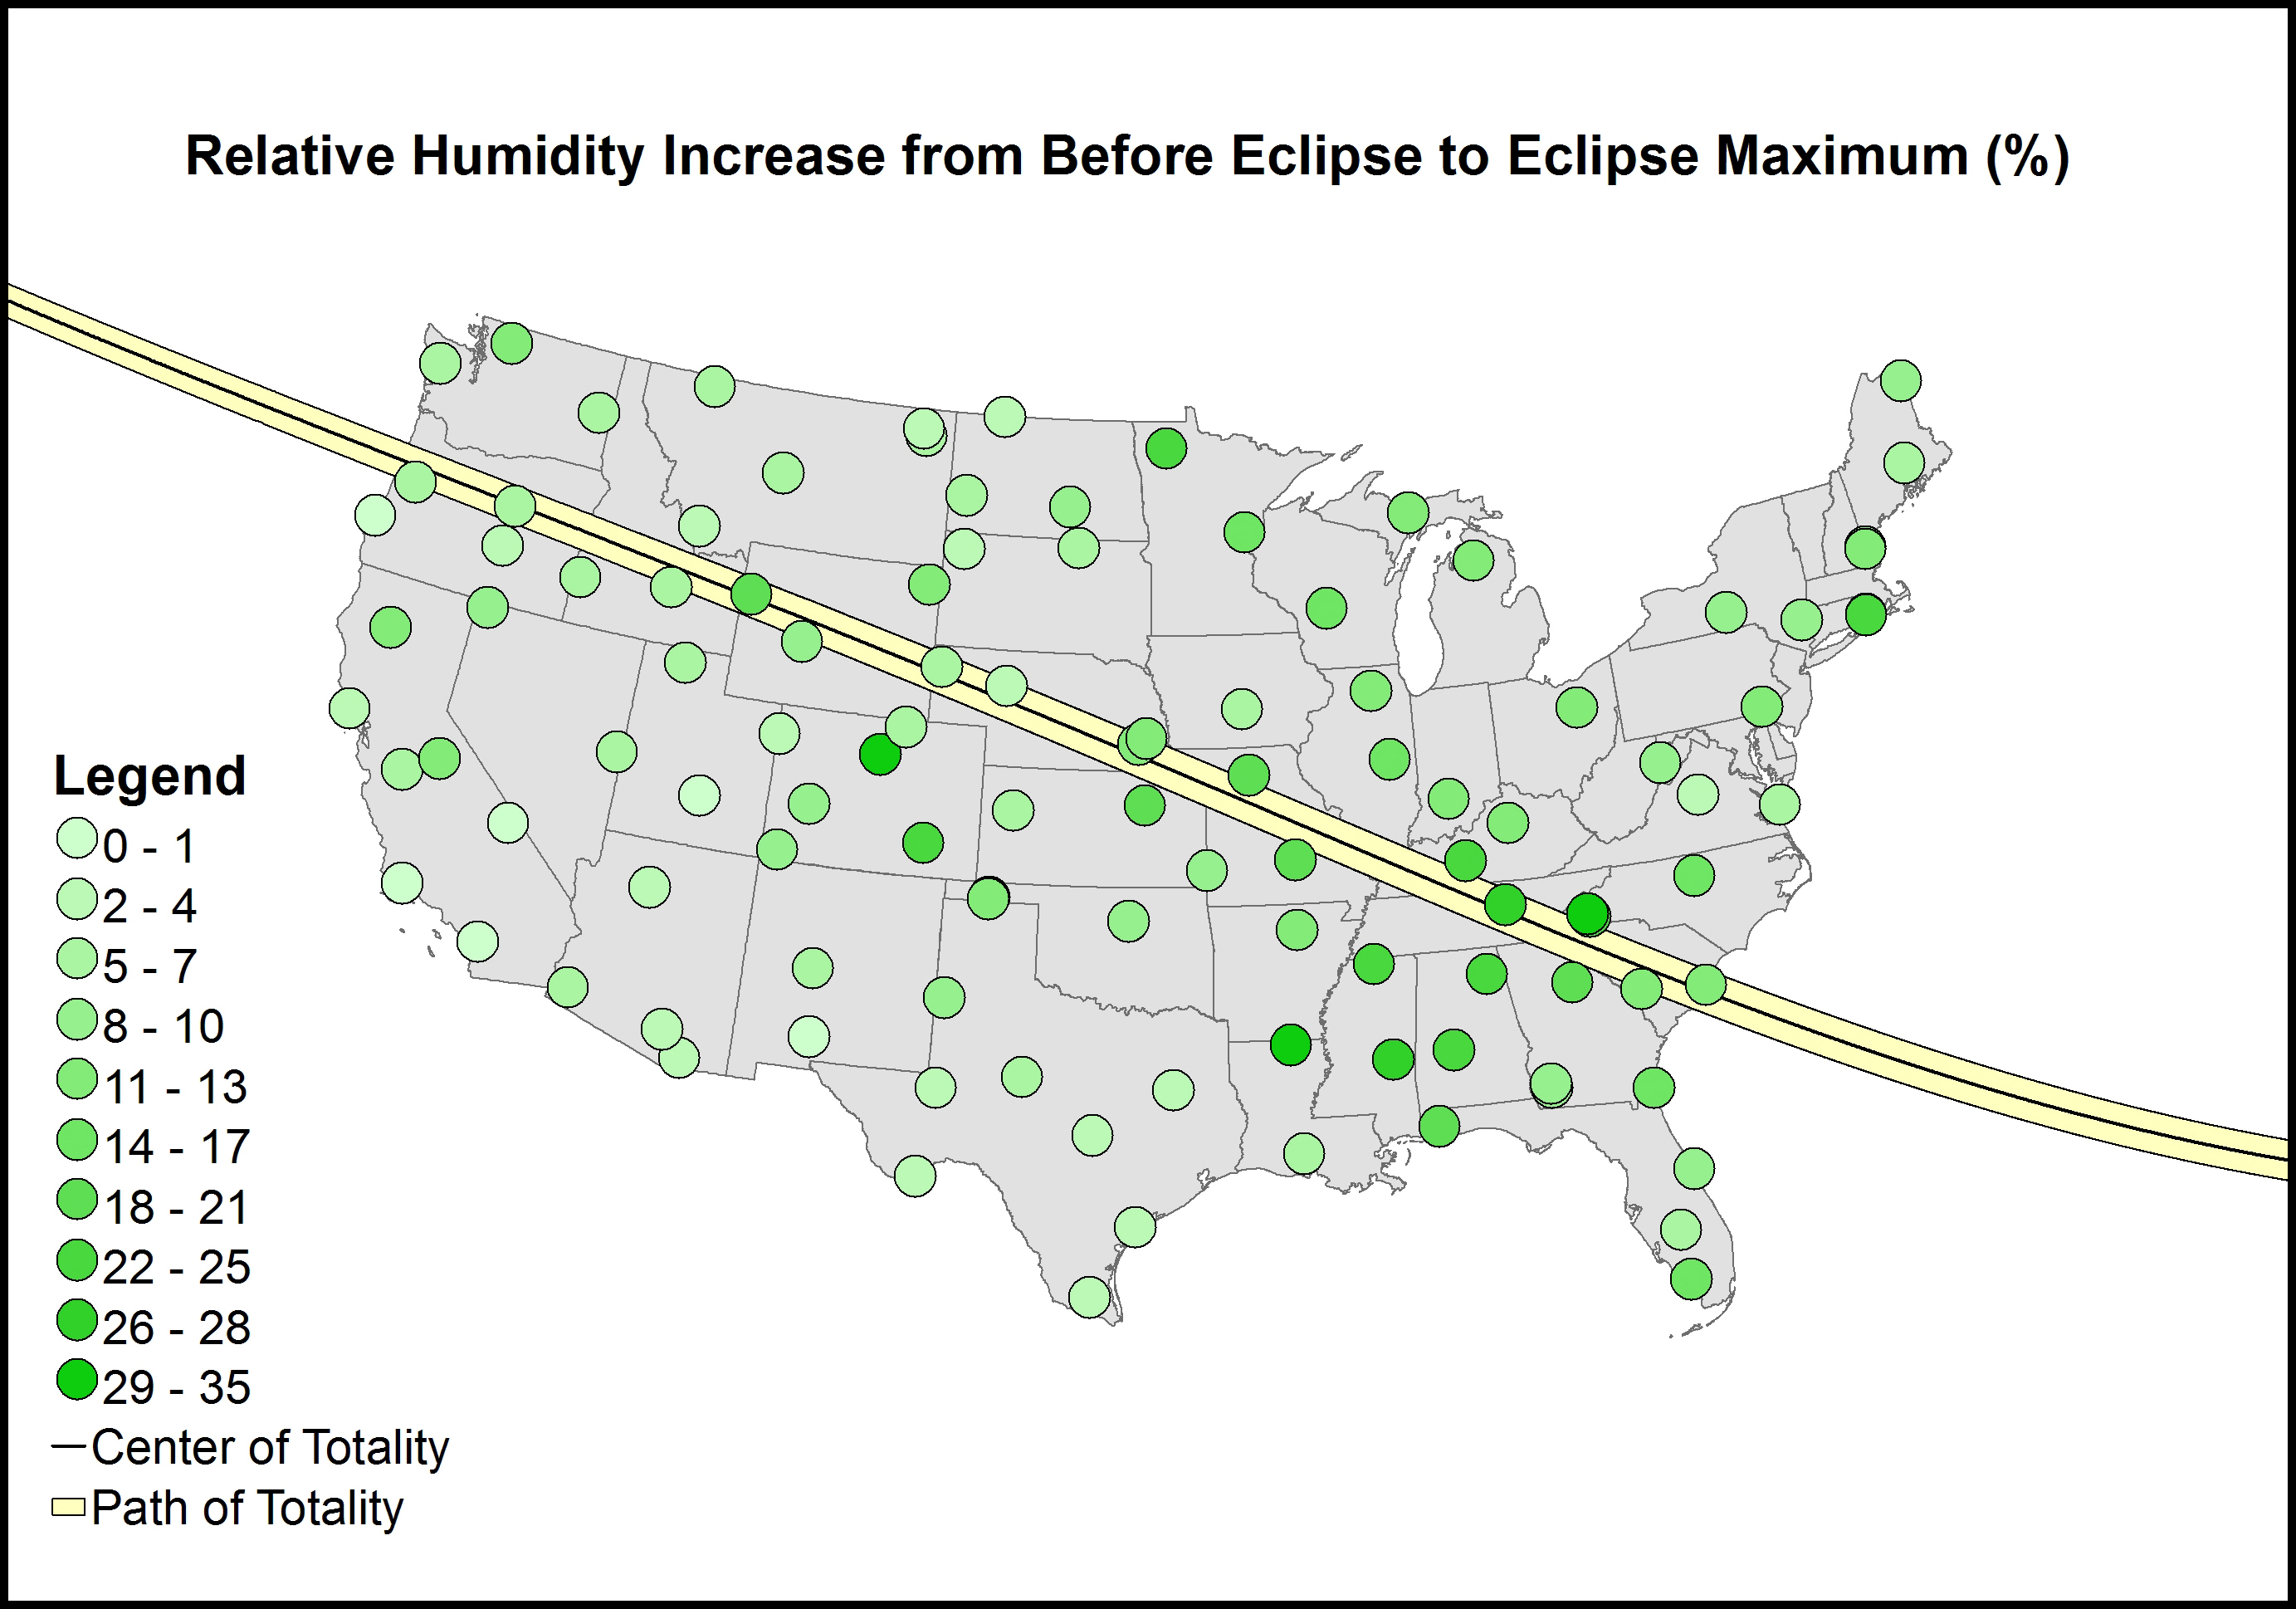 Graph of Relative Humidity Increase